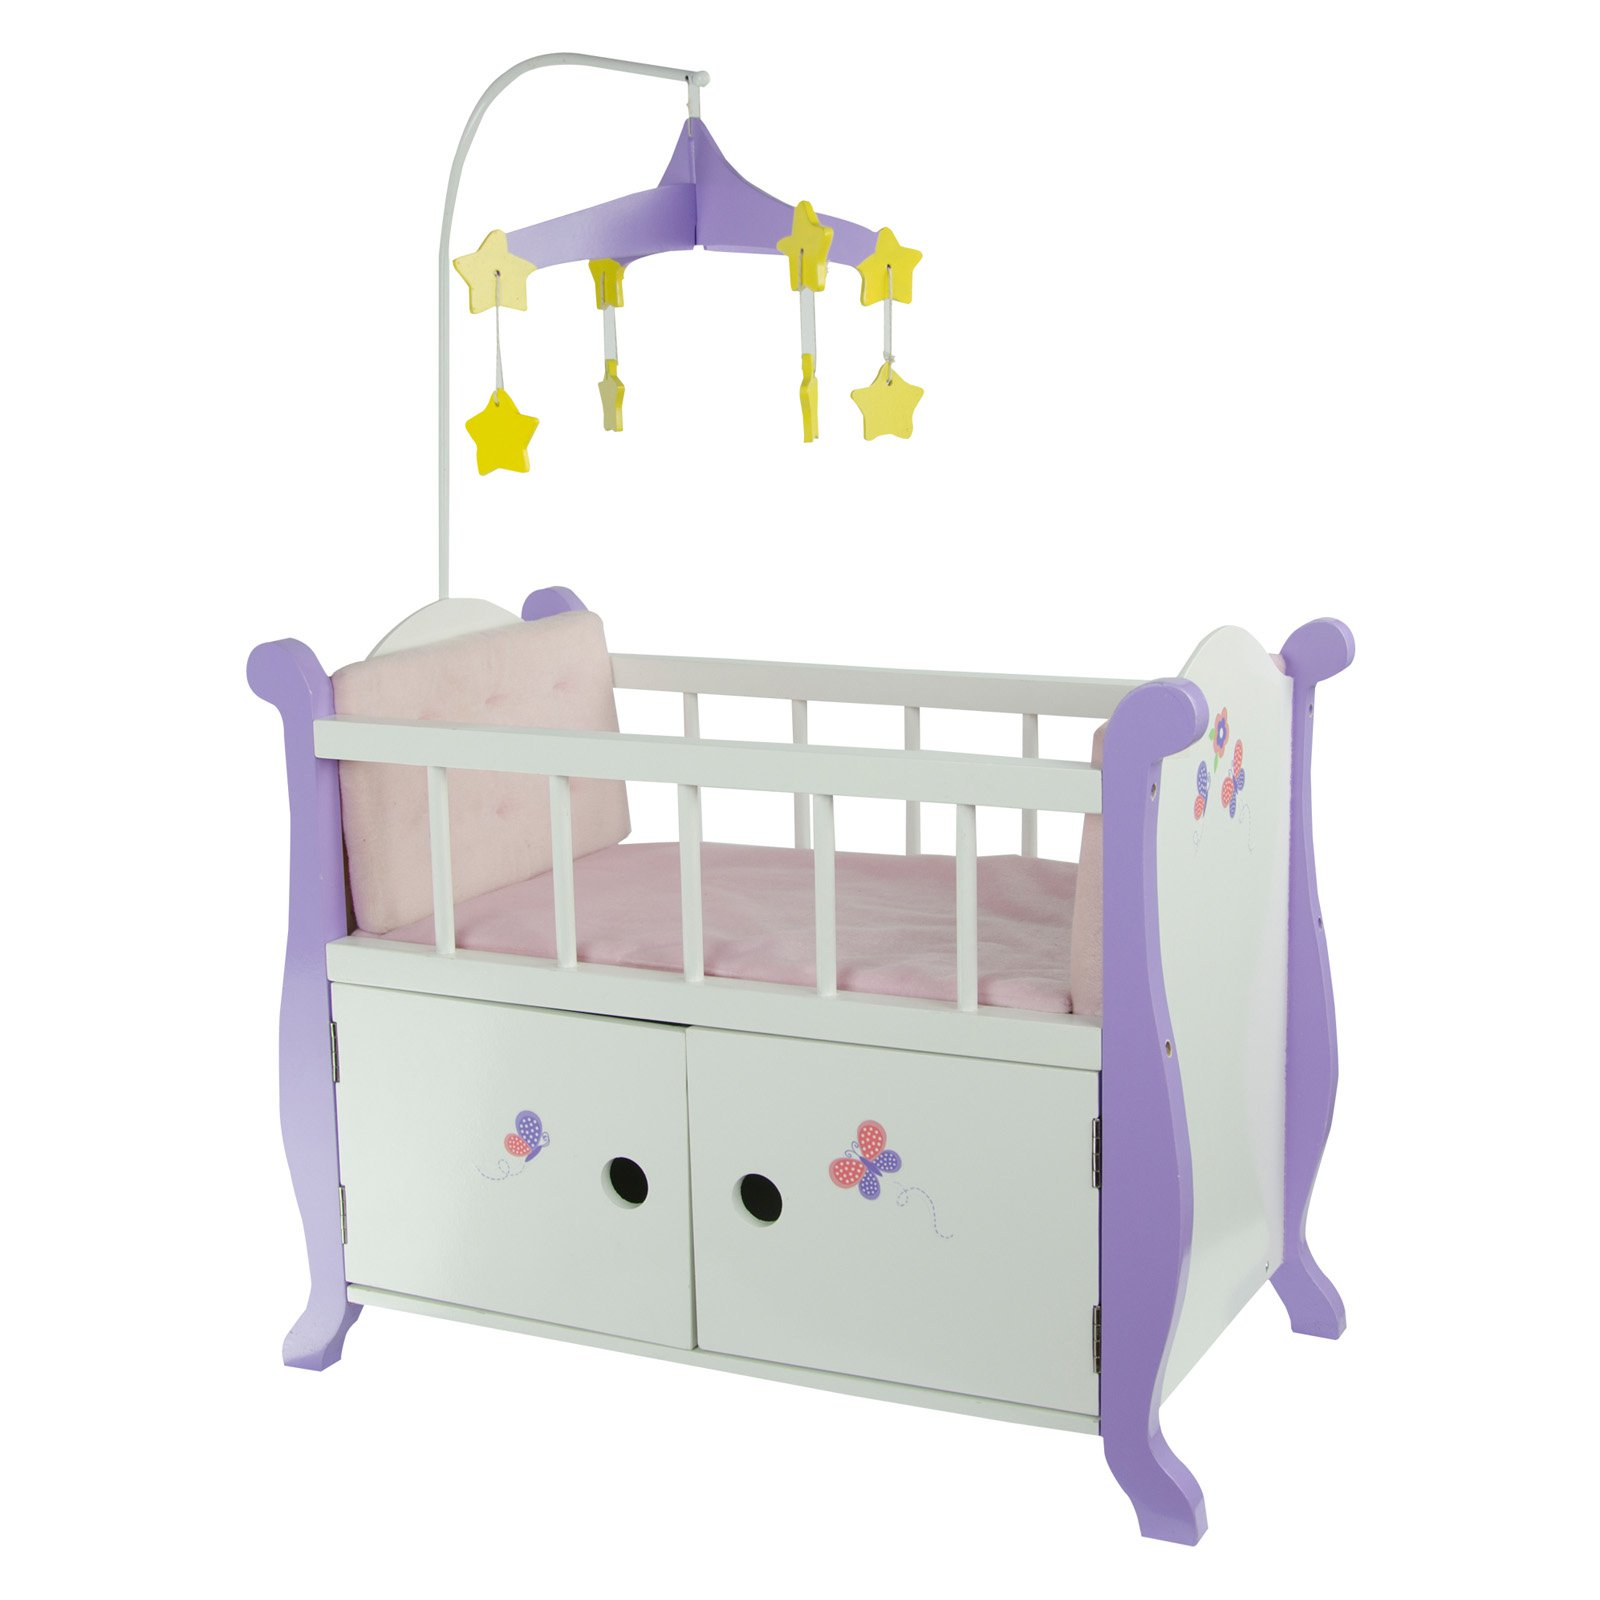 "Olivia's Little World - Little Princess 18"" Doll Baby Nursery Bed with Cabinet"